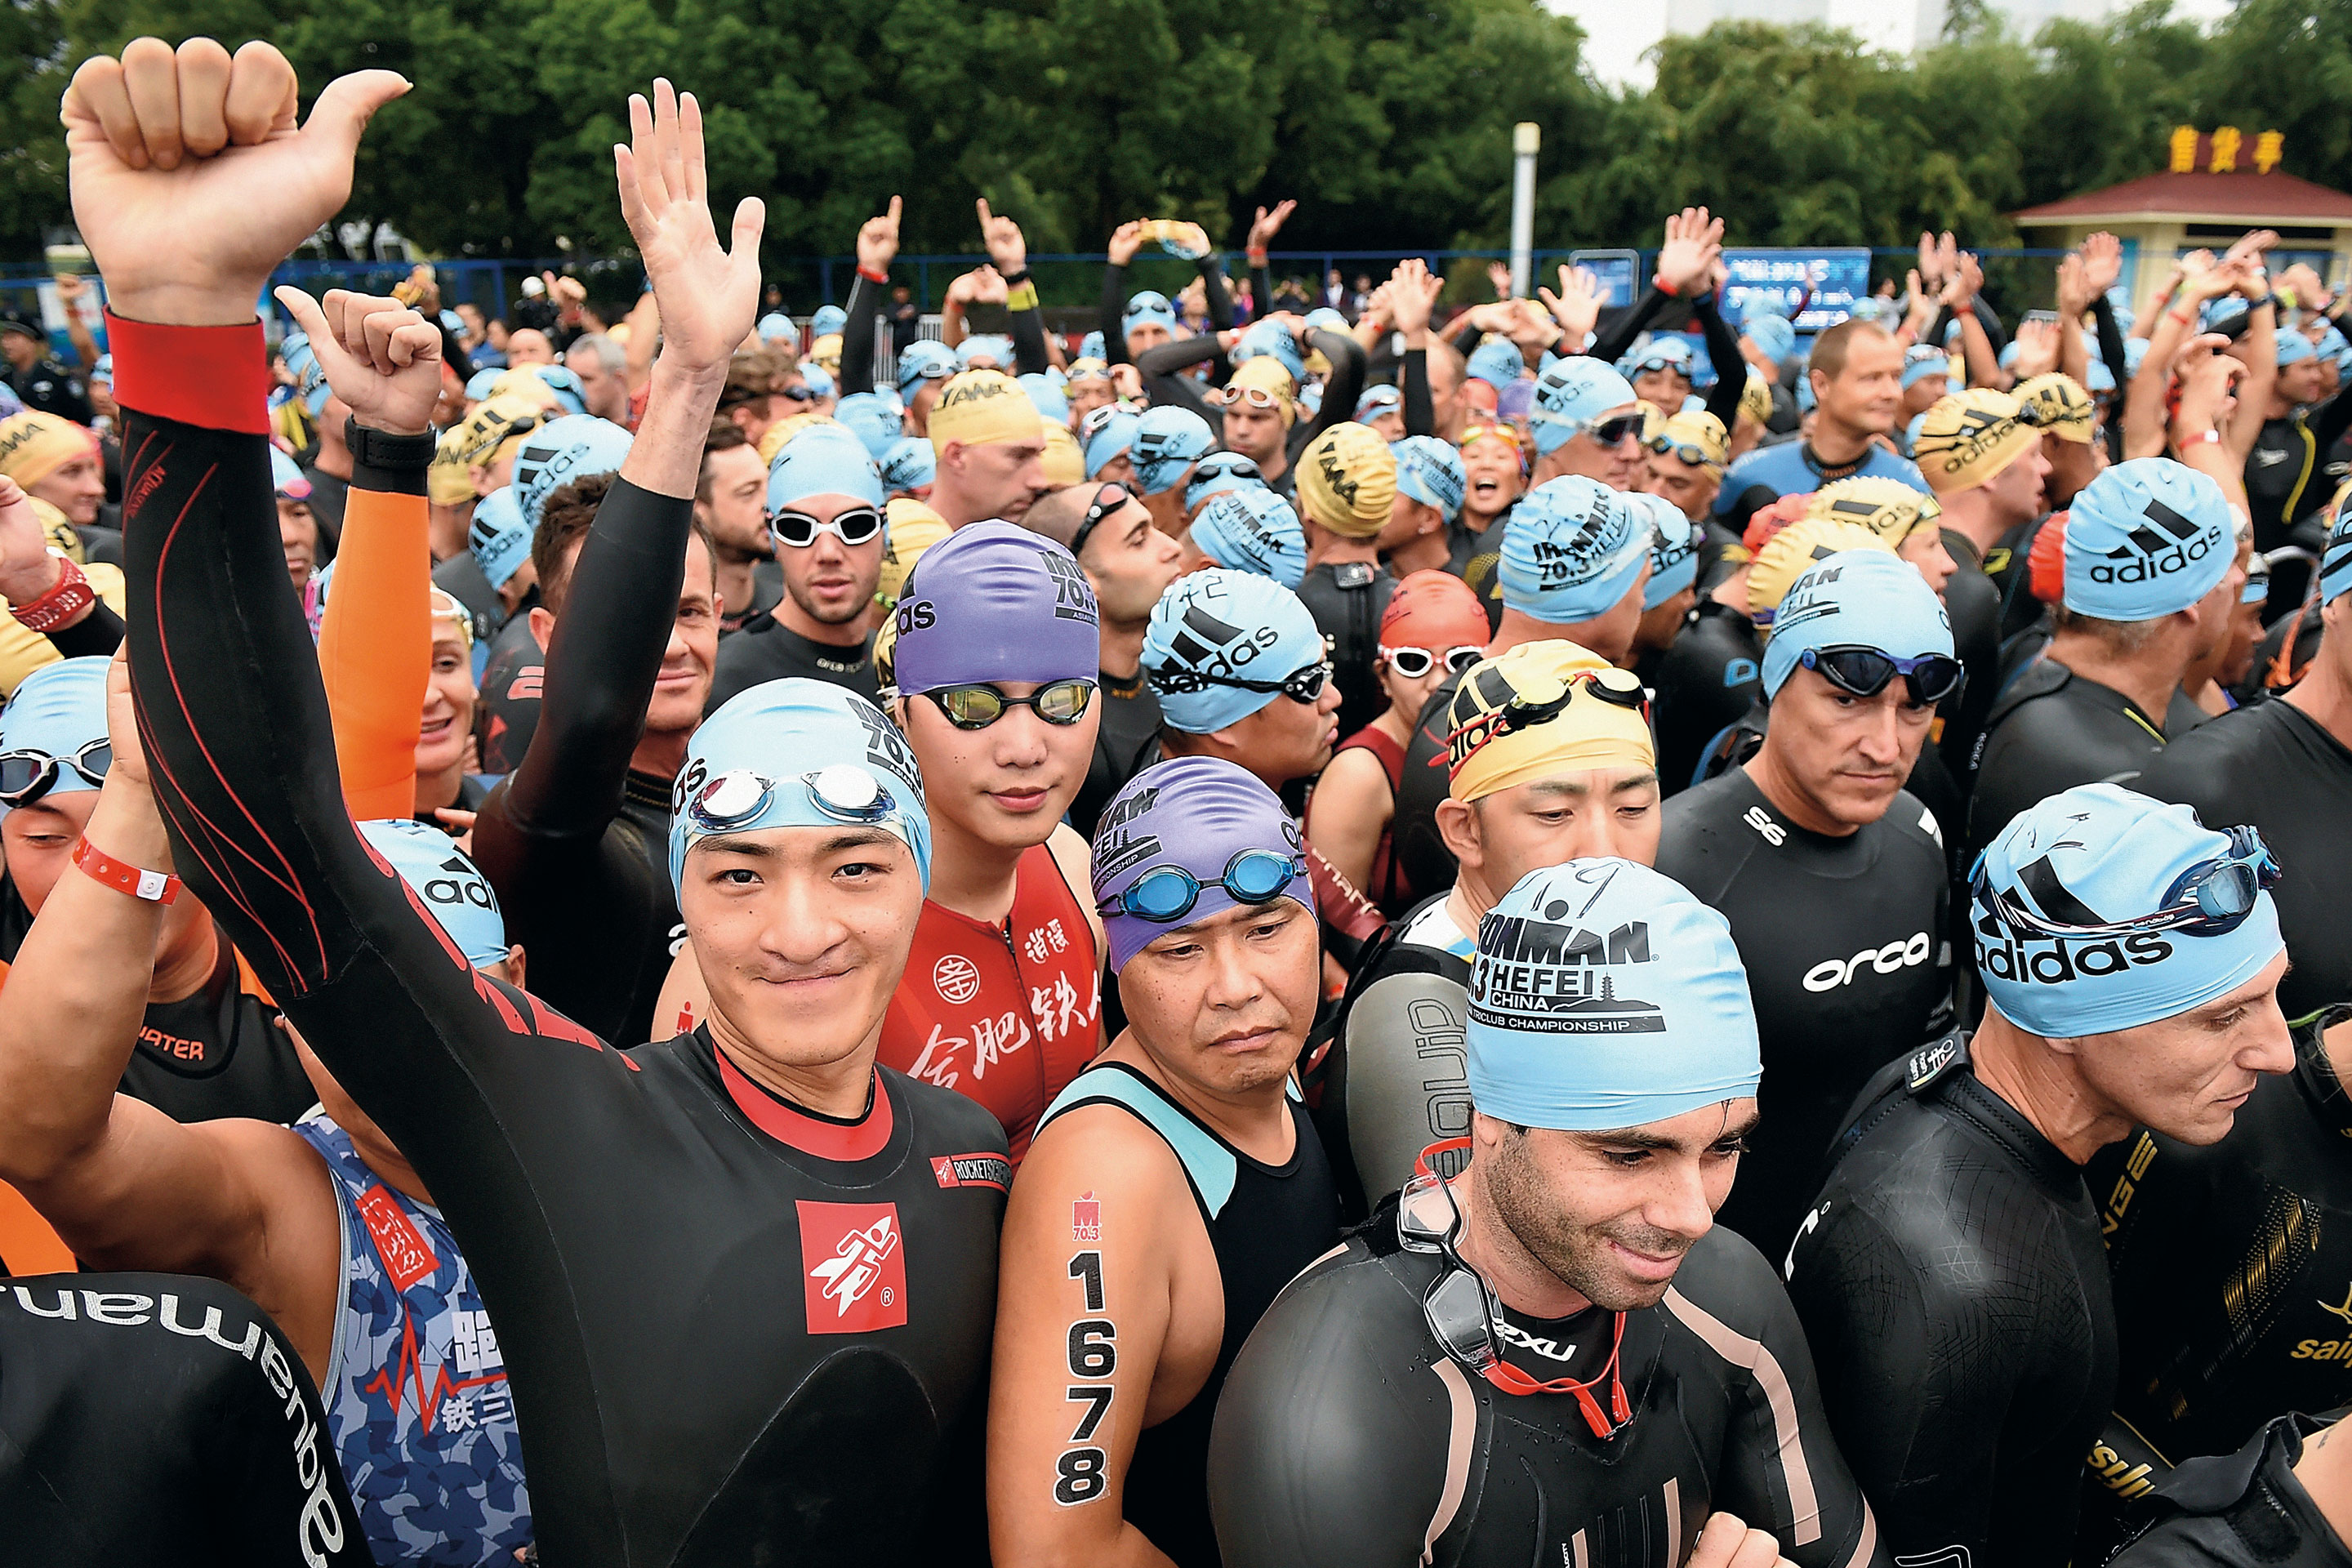 THE NEW IRONMEN: Competitors prepare for the swim phase of a triathlon event in Hefei, China. The number of Chinese nationals competing in Ironman events rose sevenfold in 2016.